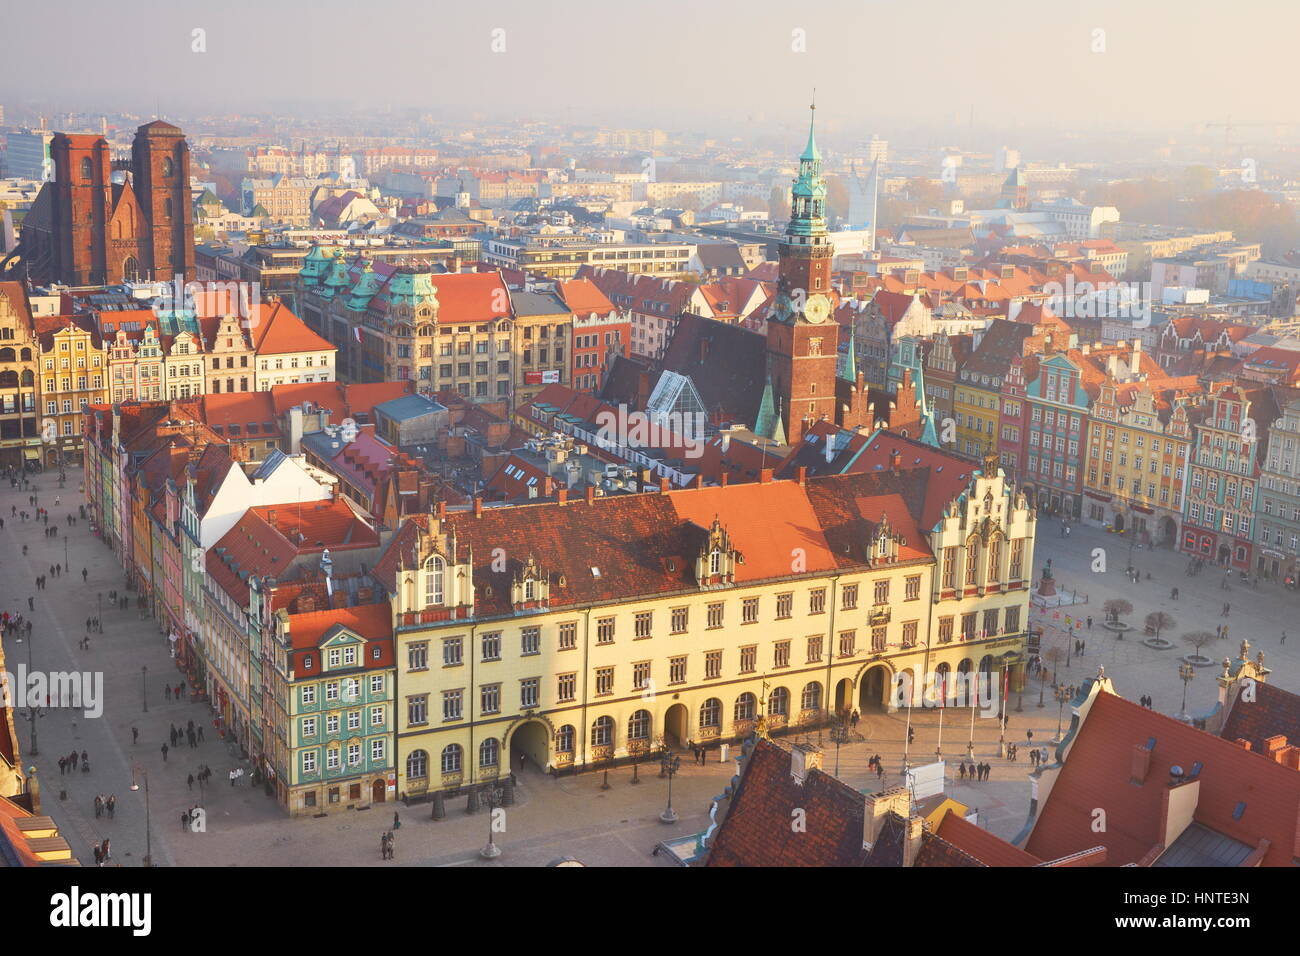 Aerial view of Wroclaw Market Square, Wroclaw, Poland, Europe - Stock Image